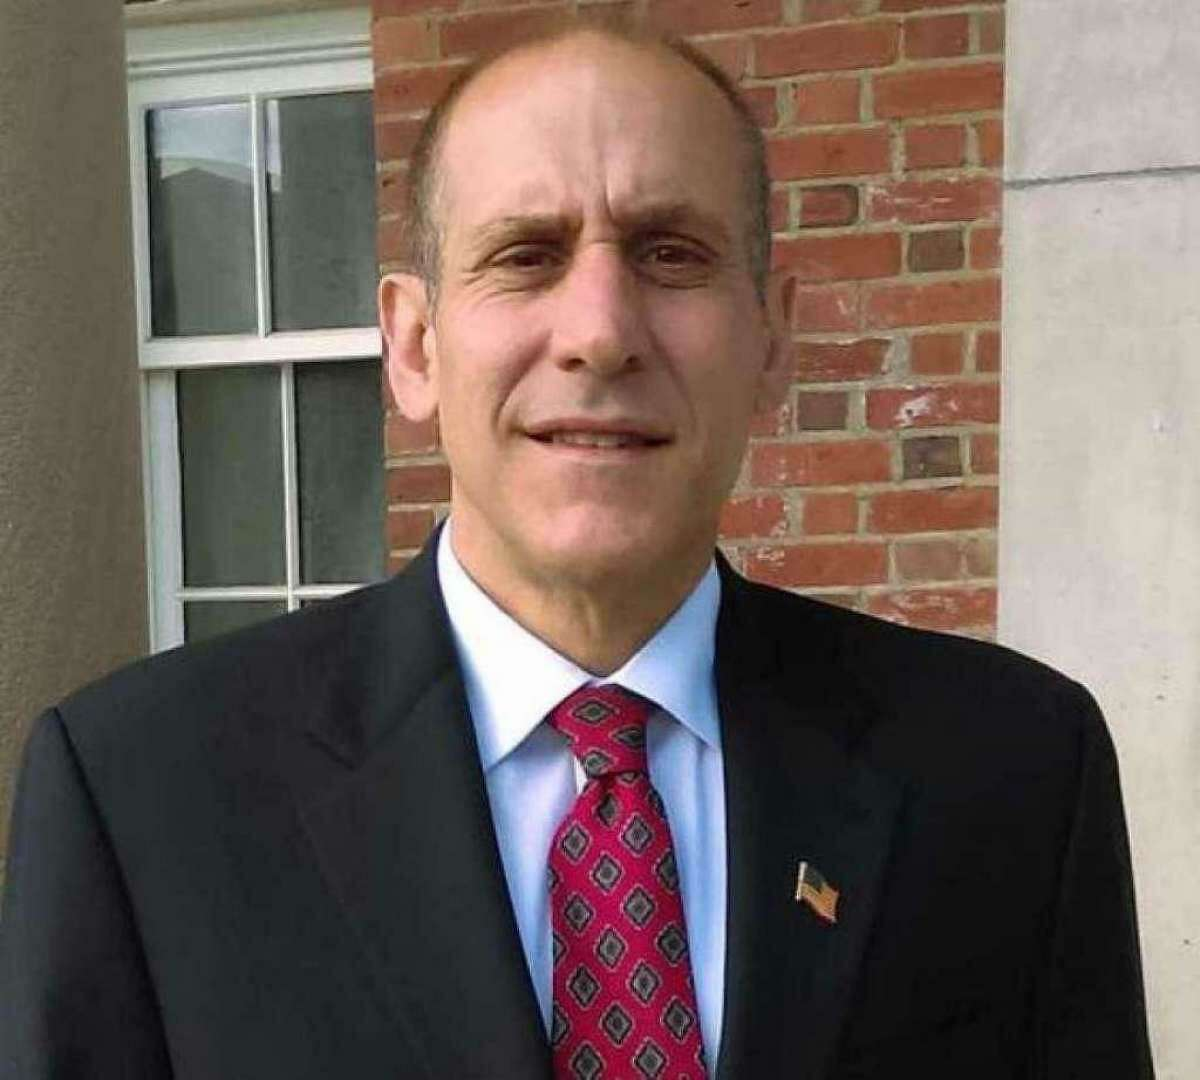 Jeff Capeci, a member of Newtown's Board of Selectmen, is running for a seat on the Legislative Council.